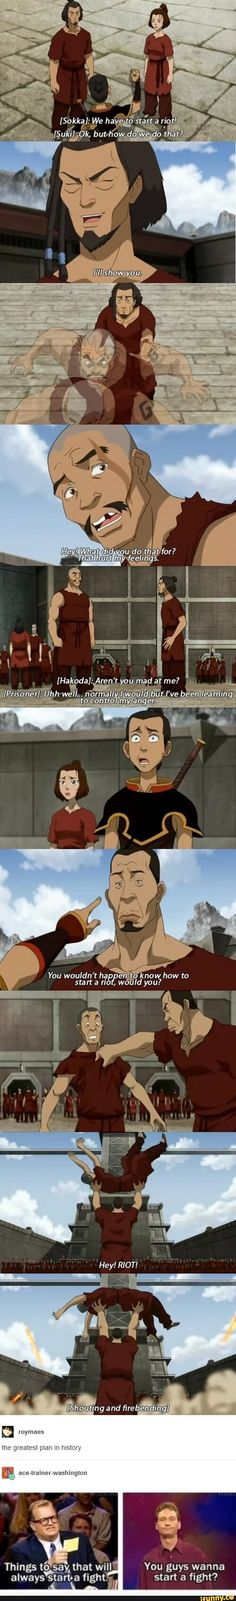 26 Ideas Funny Anime Memes Hilarious Pictures Of Avatar Aang, Avatar The Last Airbender Funny, The Last Avatar, Avatar Funny, Team Avatar, Avatar Airbender, Aang Funny, Funny Images, Funny Pictures